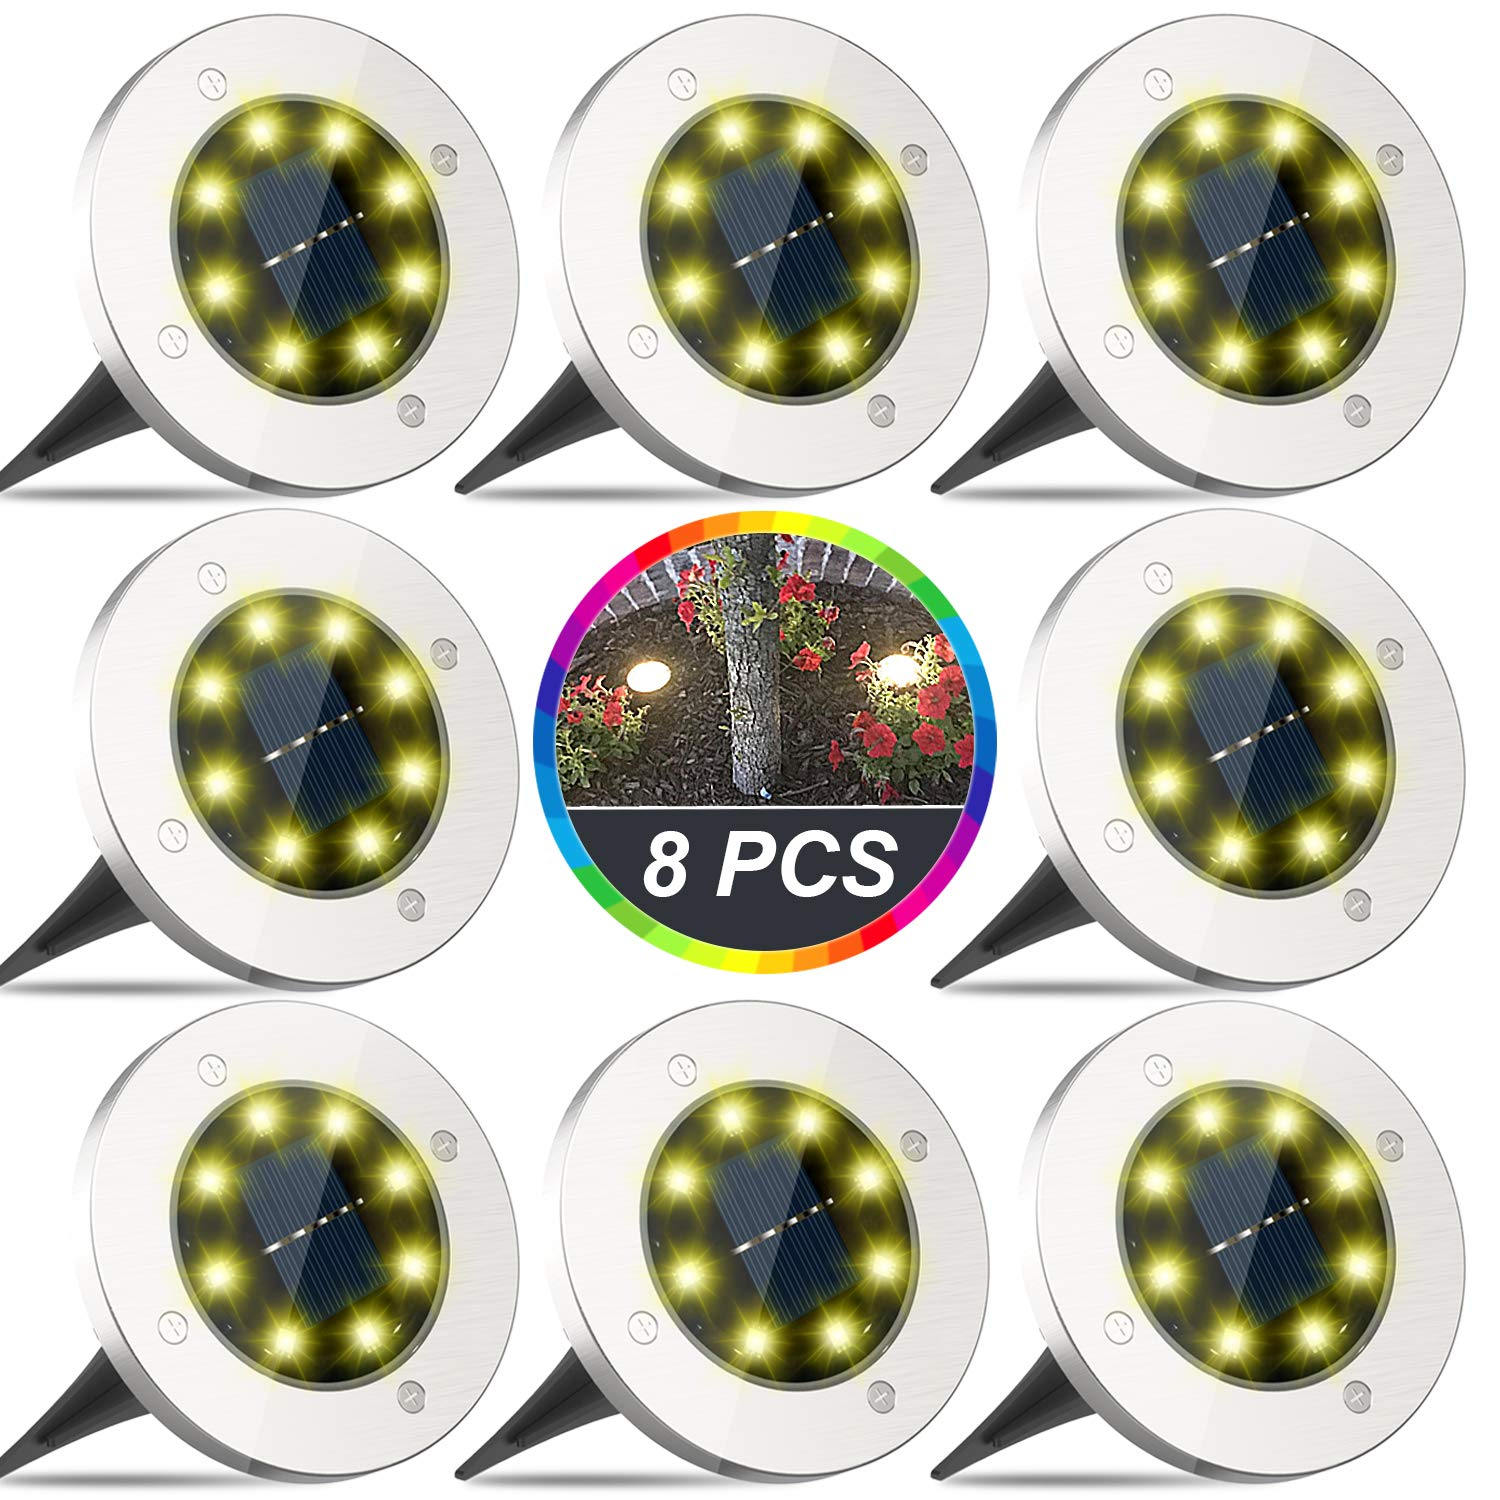 Solar Ground Lights, 8 LED Disk Lights Solar Powered, Outdoor In-Ground Lights, IP65 Waterproof for Landscape, Walkway, Lawn, Steps Decks, Pathway, Yard Driveway, Stairs, Warm White Lights(8 Pack) by Yakalla